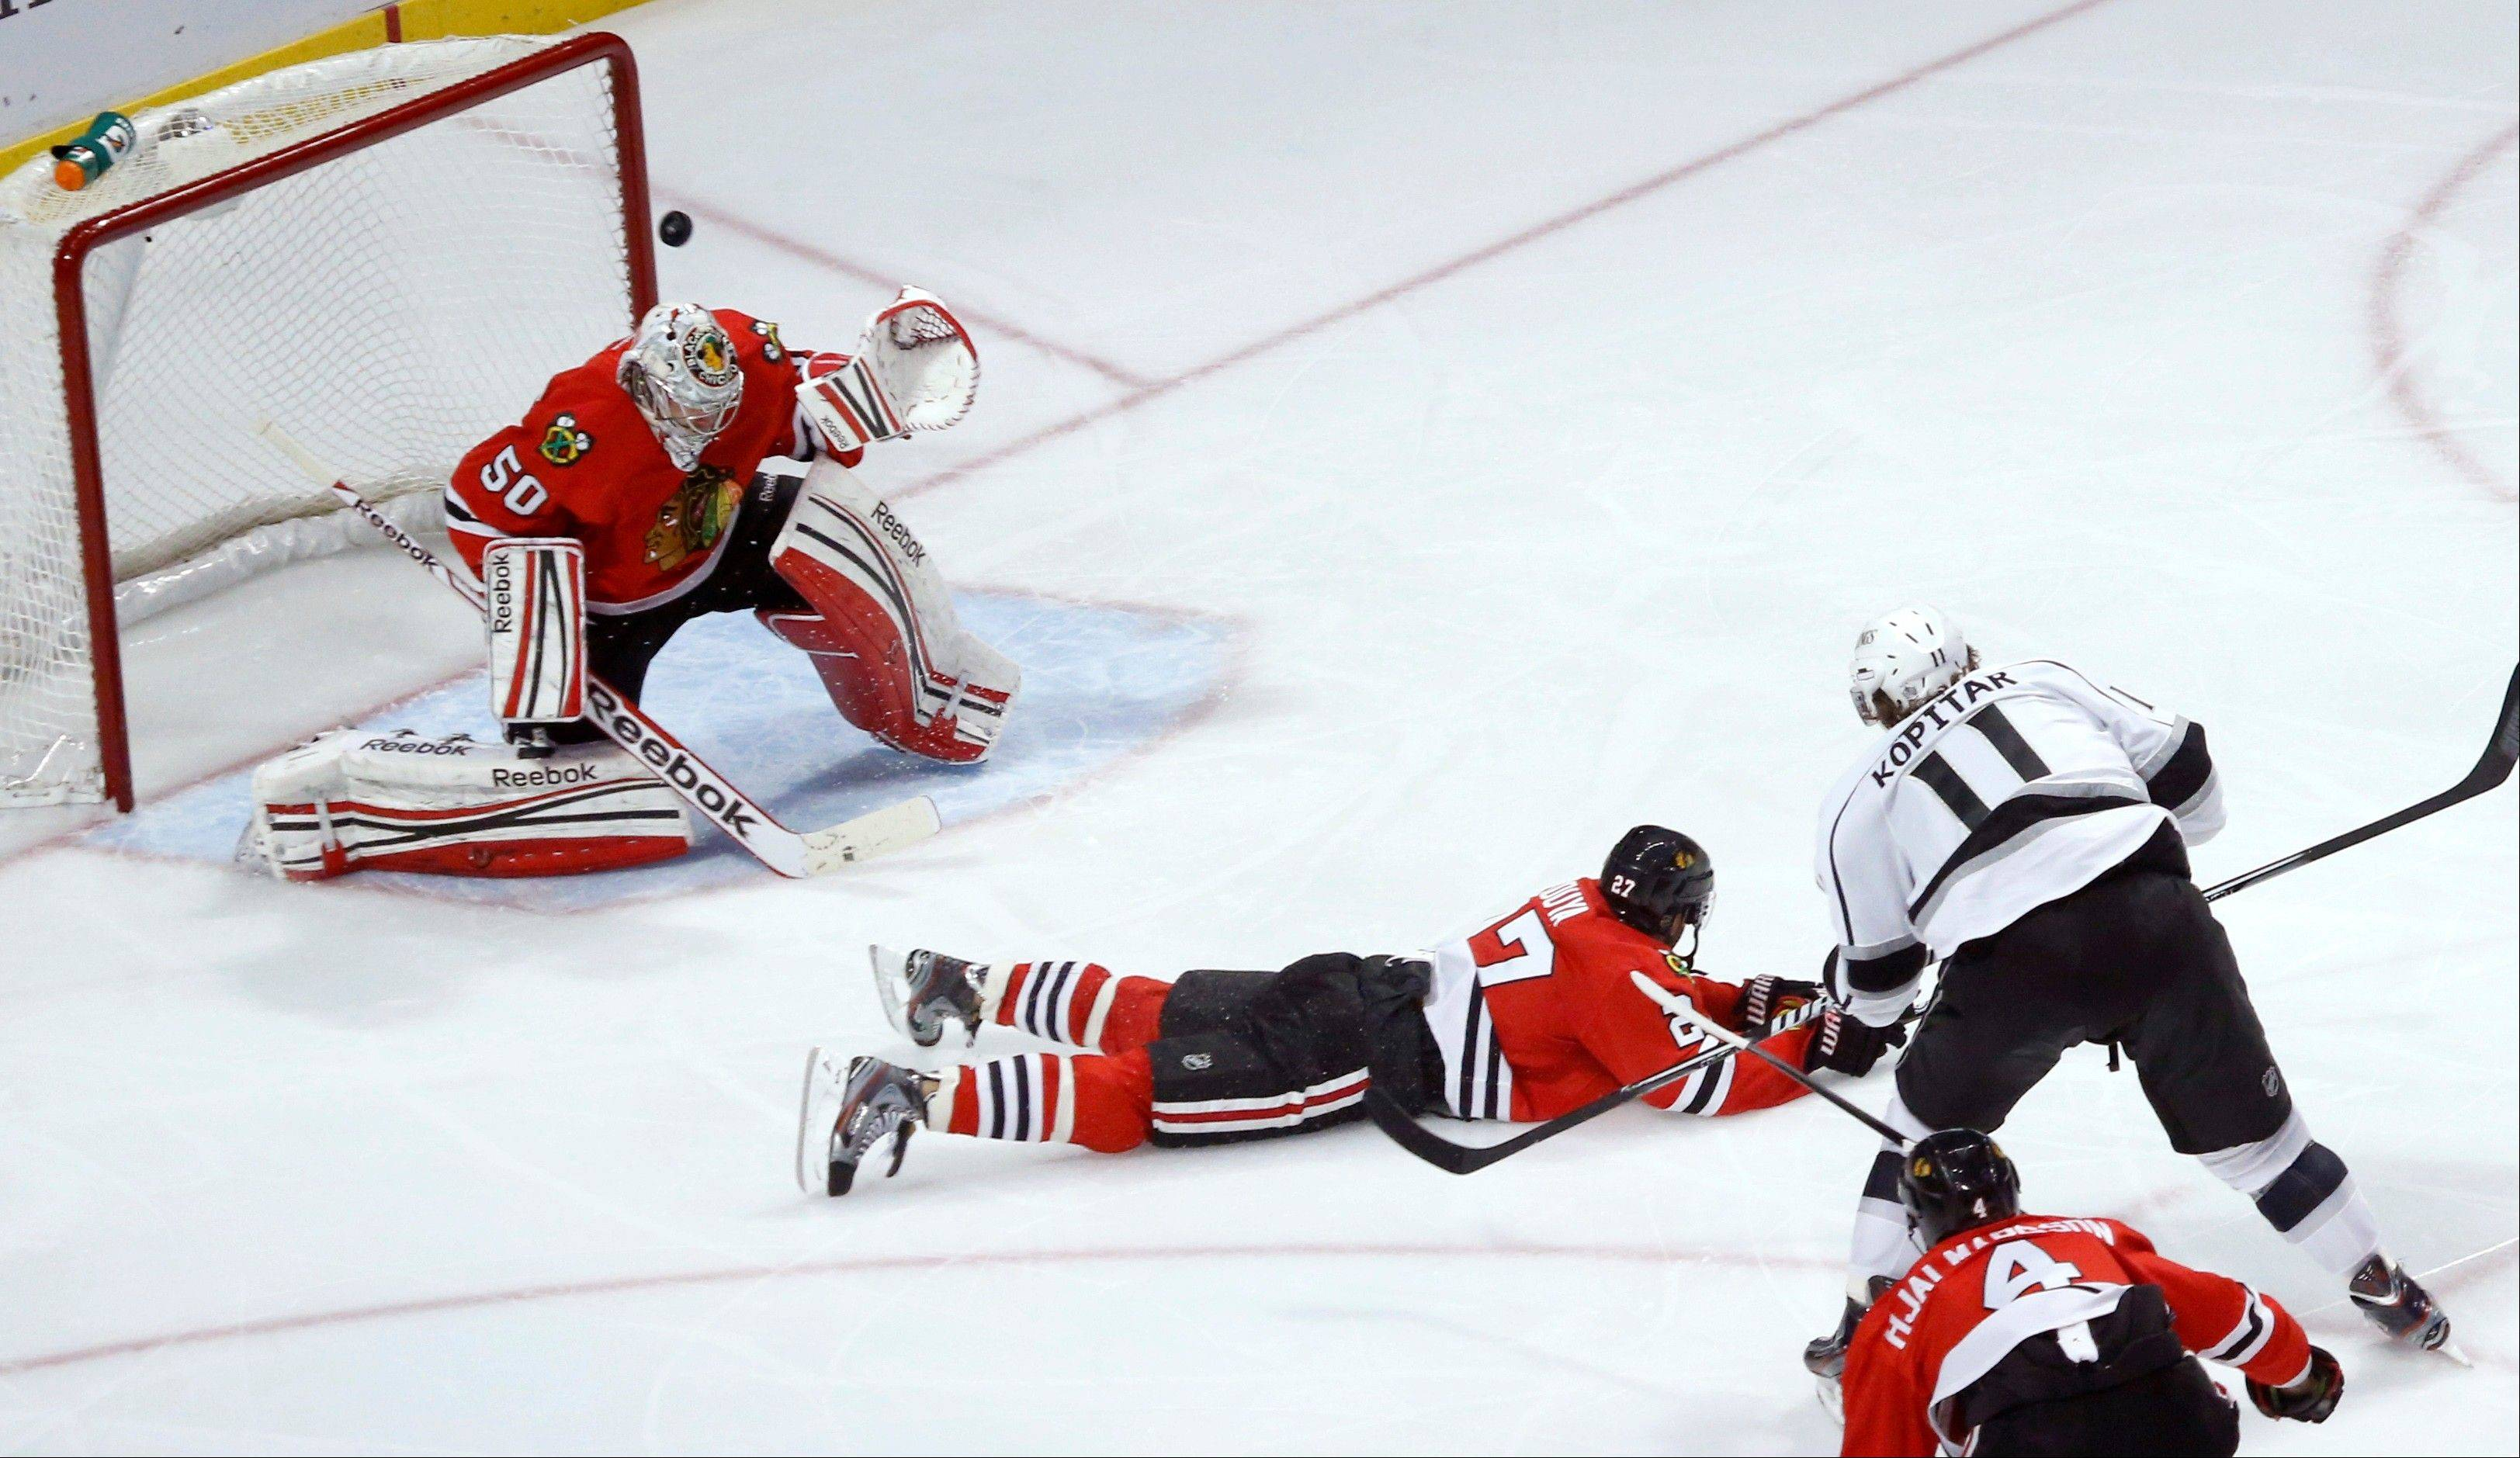 Los Angeles Kings center Anze Kopitar (11), from Slovenia, shoots and scores past Chicago Blackhawks defenseman Johnny Oduya (27), of Sweden, and goalie Corey Crawford (50) during the second period of an NHL hockey game, Monday, March 25, 2013, in Chicago. (AP Photo/Charles Rex Arbogast)